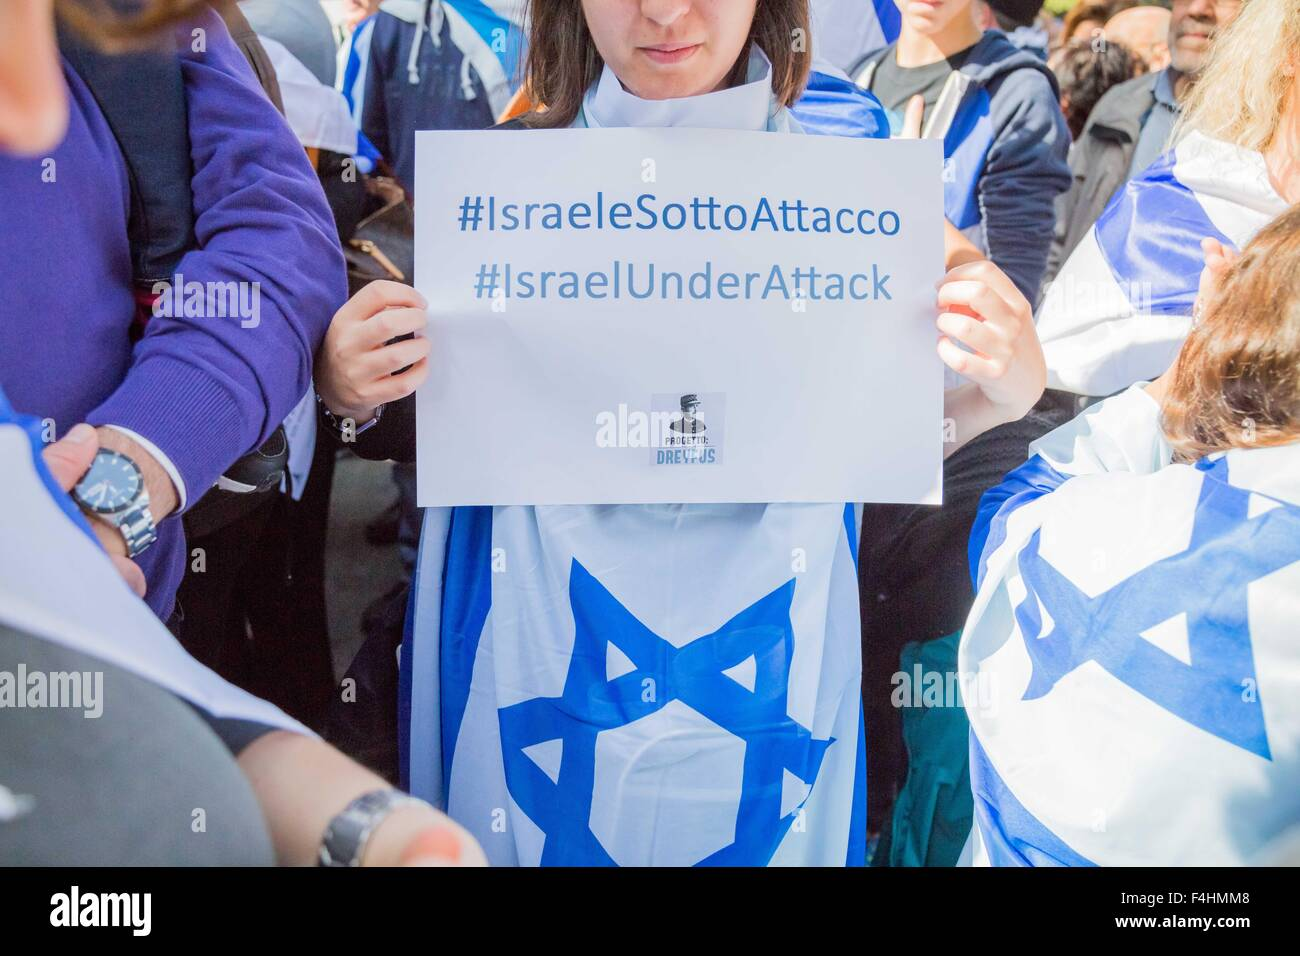 Rome, Italy. 18th Oct, 2015. A Jewish shows placard during a protest against the media and the attacks on Israelis. - Stock Image